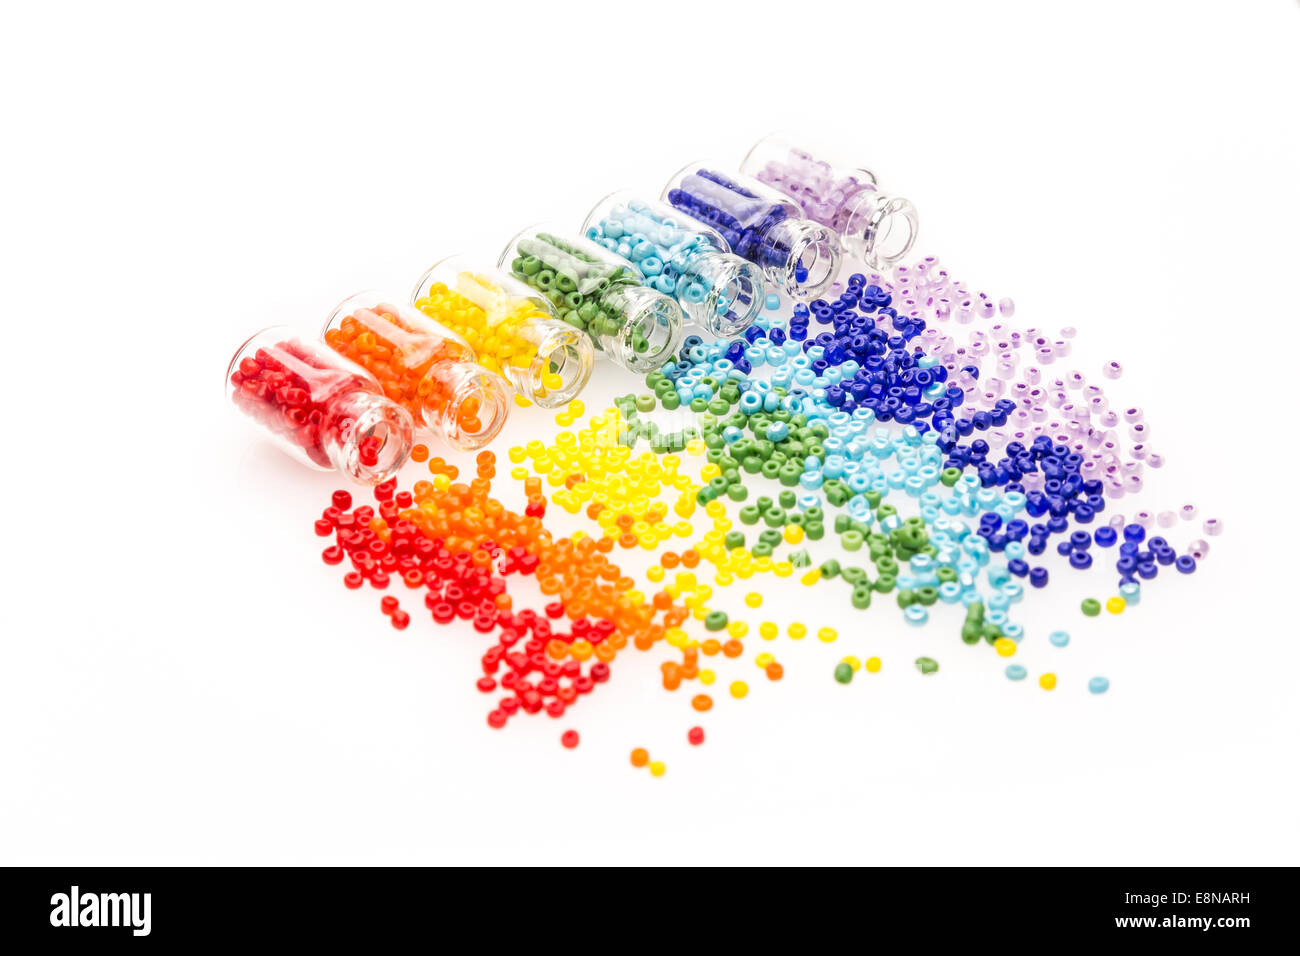 Tiny glass bottles filled with a rainbow colors of beads spilling out, on a white background Stock Photo